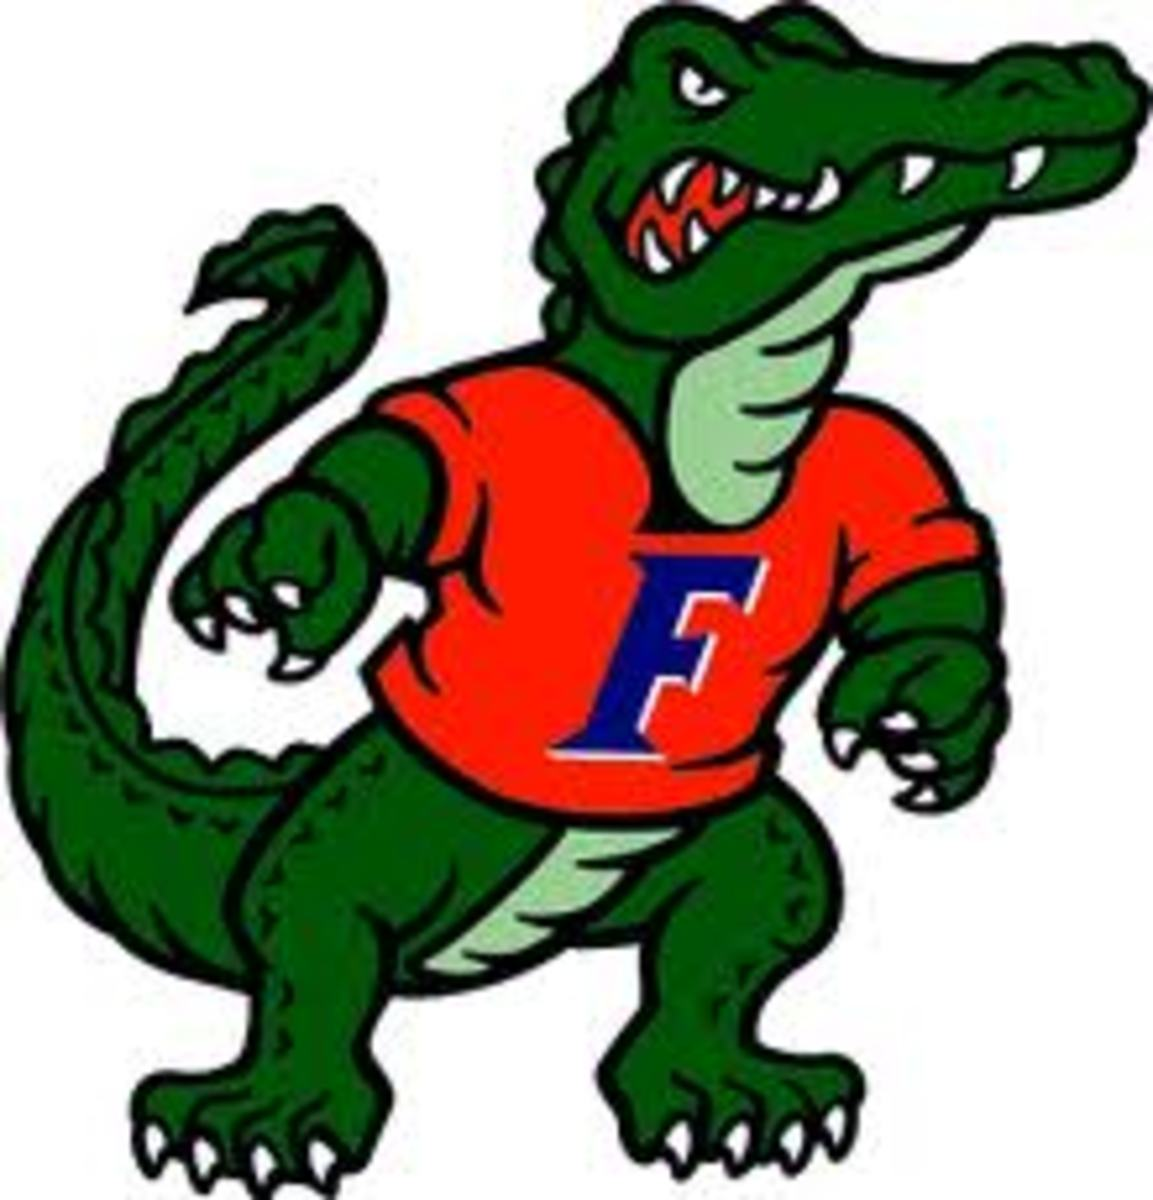 The other Gator - University of Florida